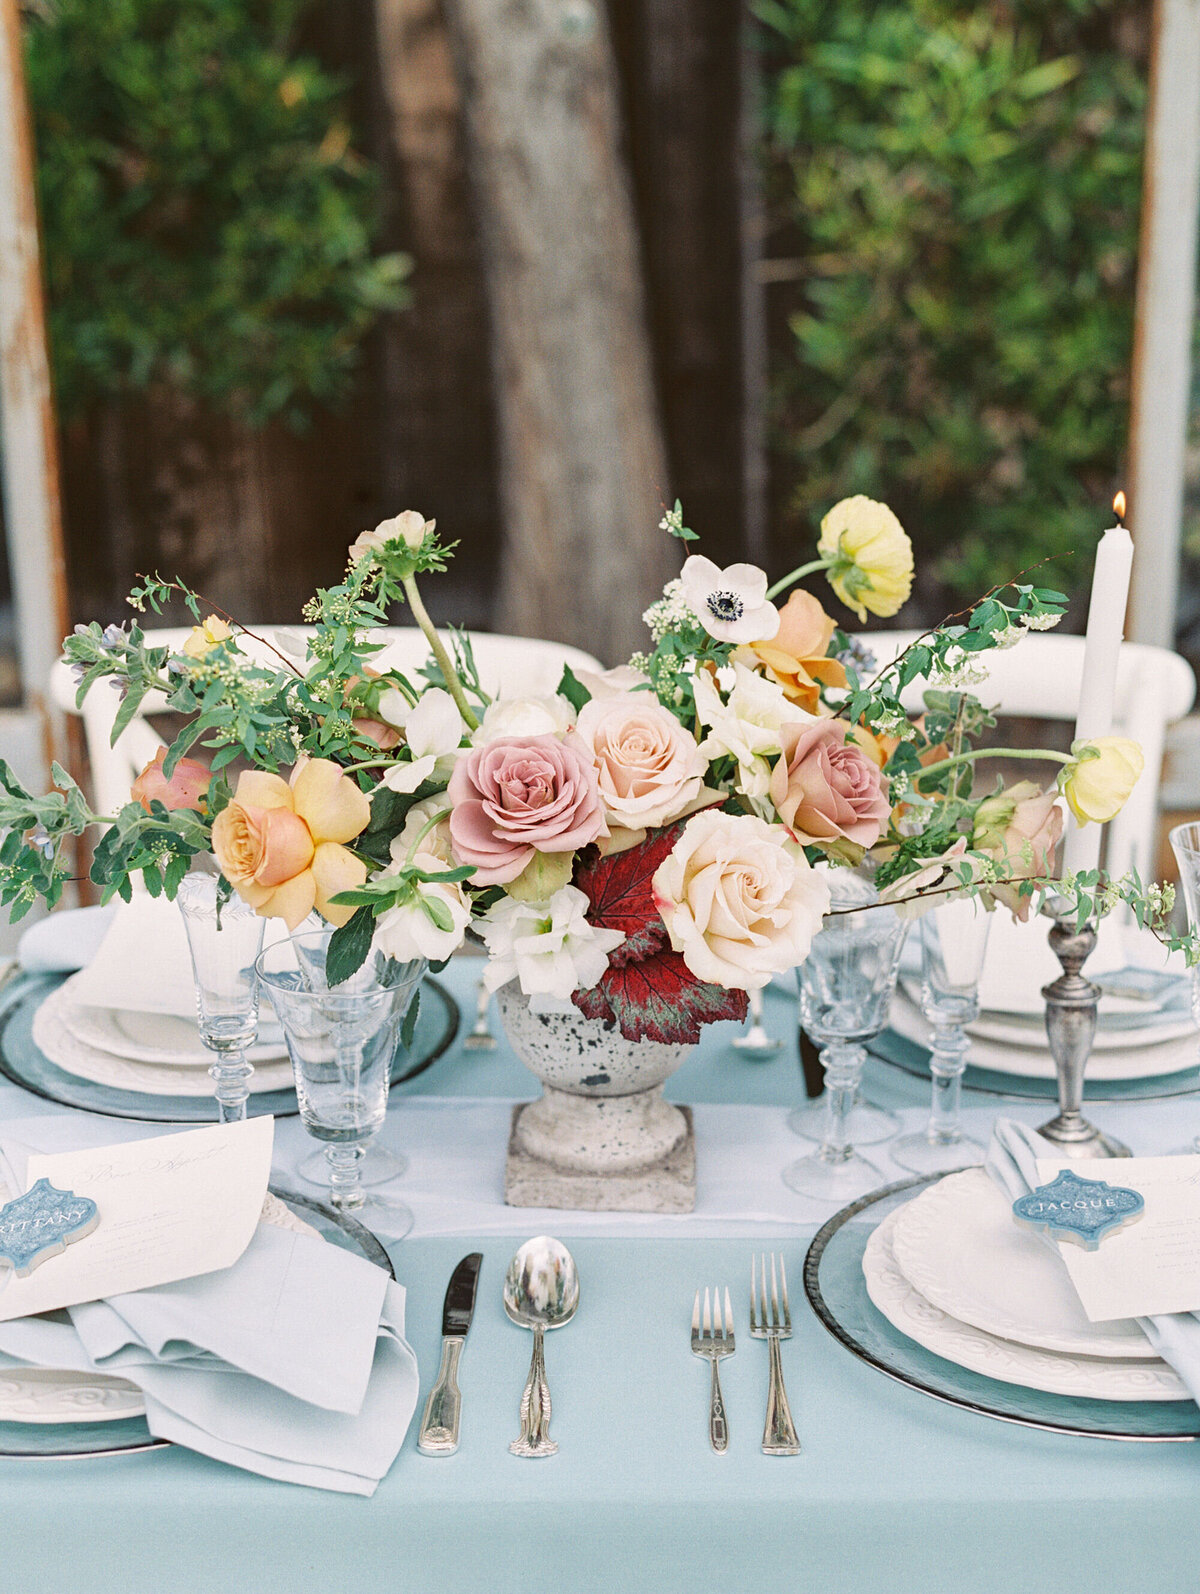 Pepper-Tree-Ranch-Wedding-Inspiration-San-Luis-Obispo-Ashley-Rae-Studio-187